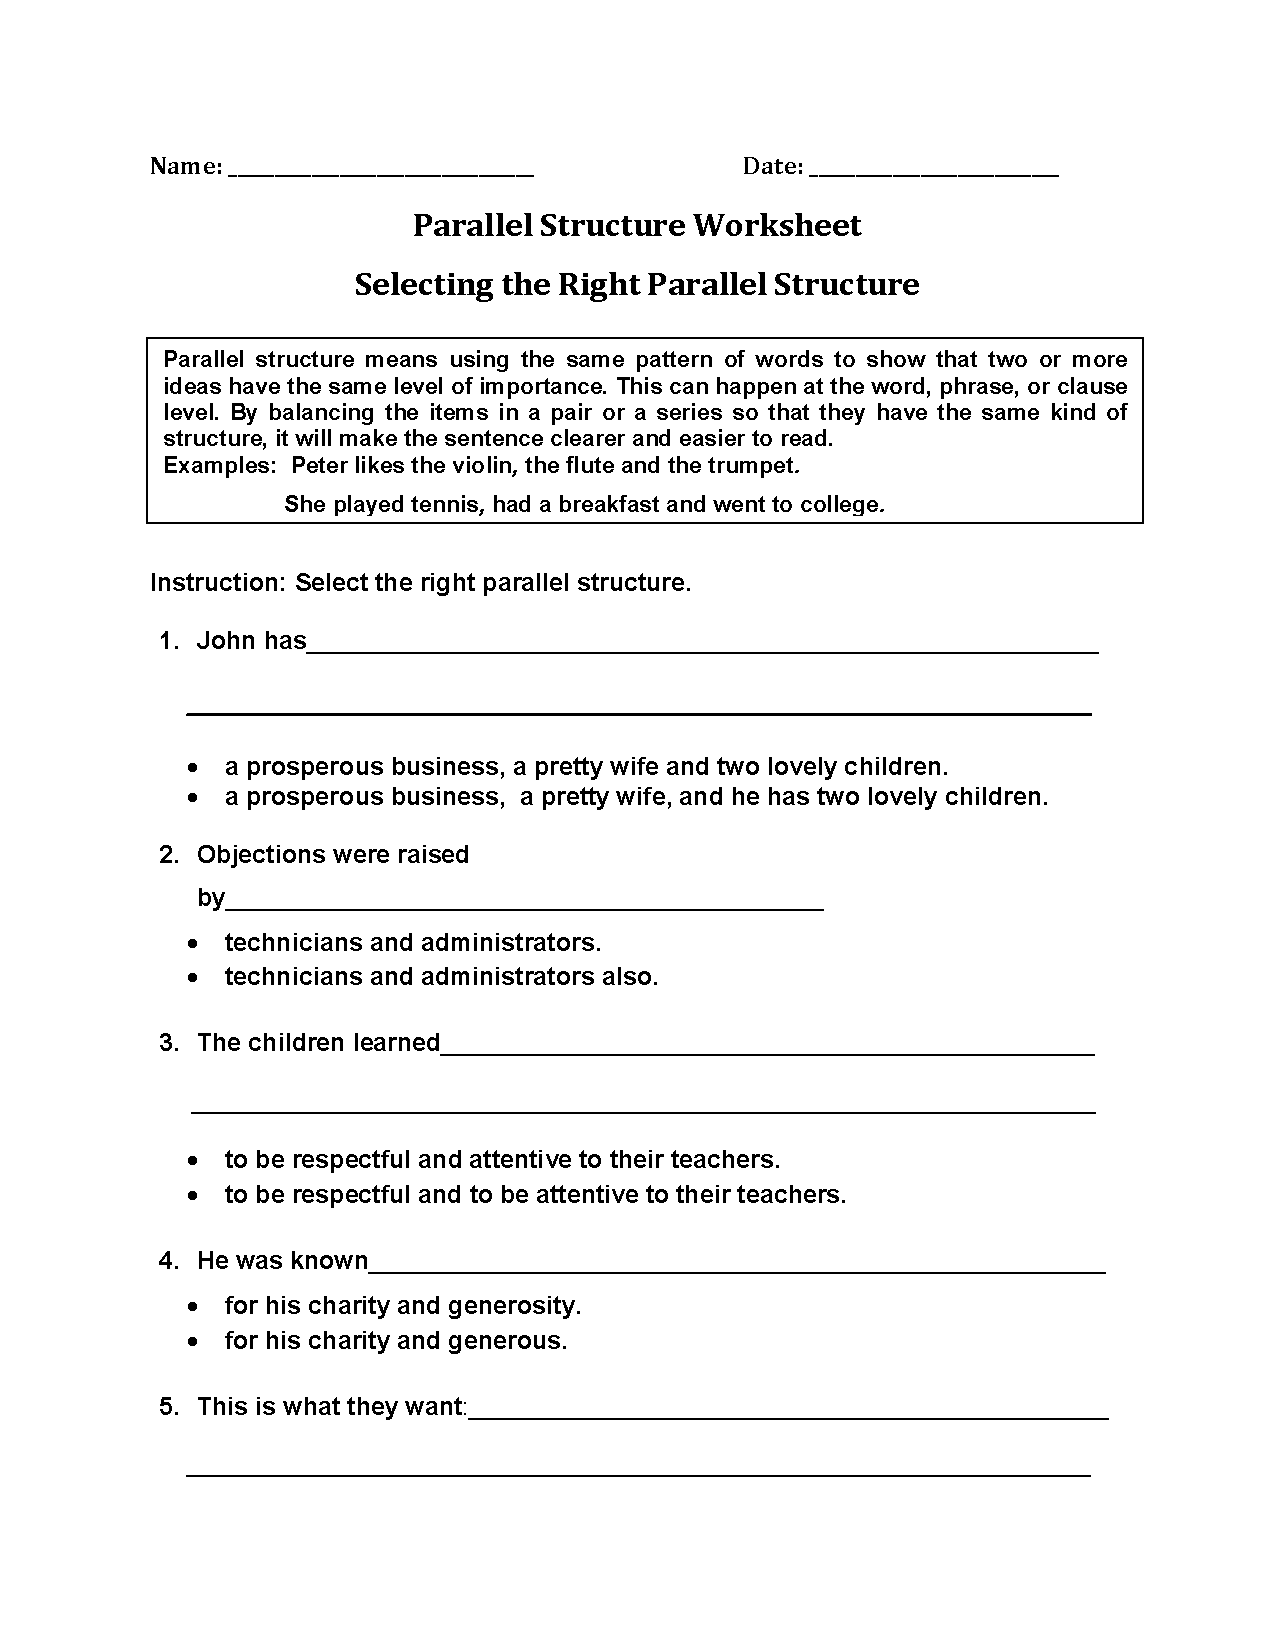 Parallel Structure Worksheets